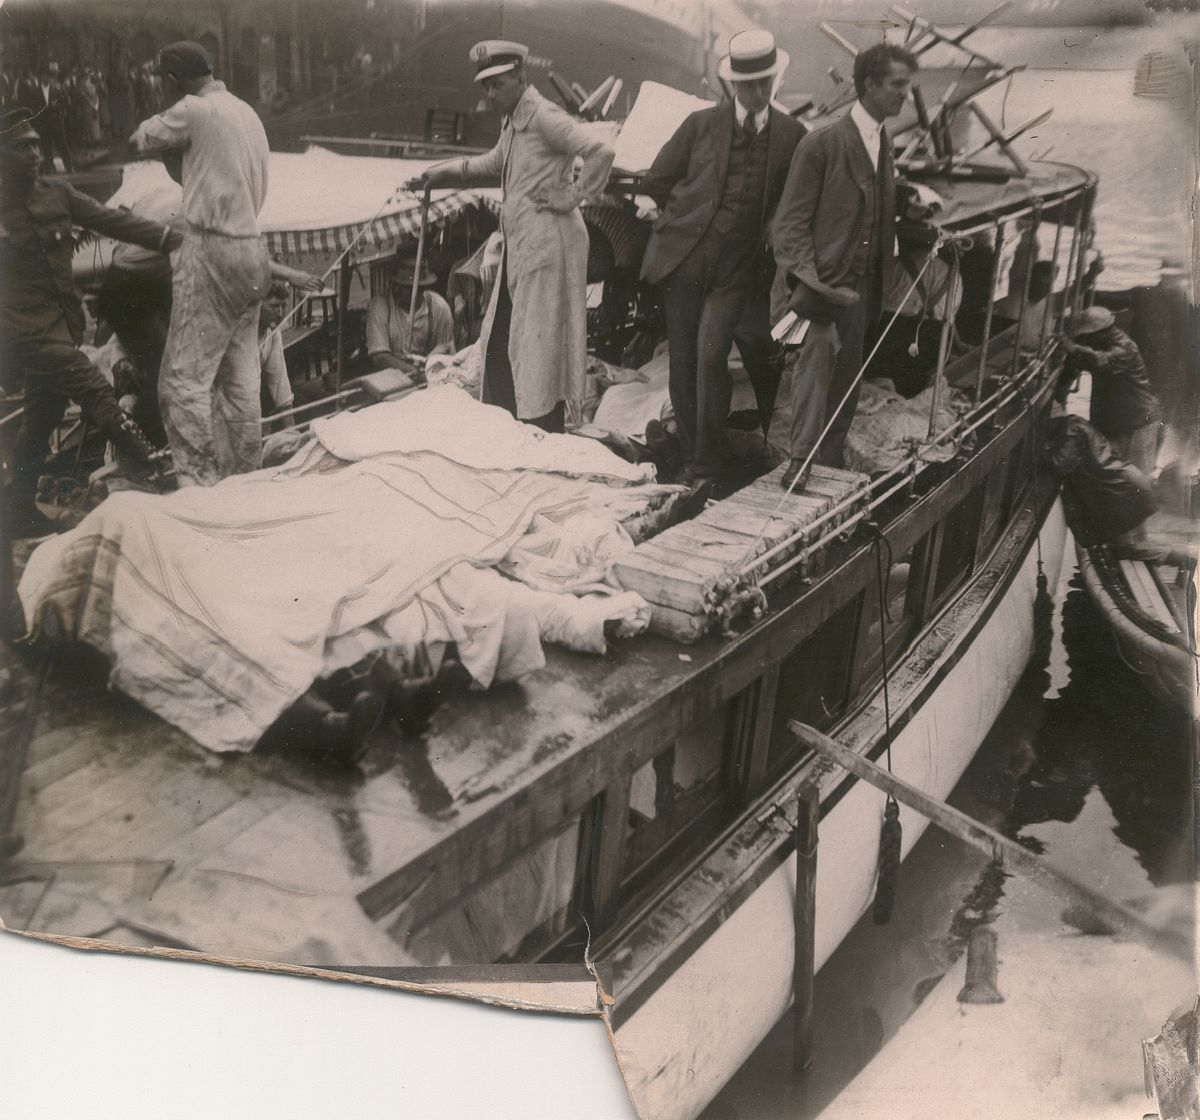 Aftermath of the sinking of the Eastland in the Chicago River on July 24, 1915, a disaster in which 844 people died. Photo is from July 27, 1995.